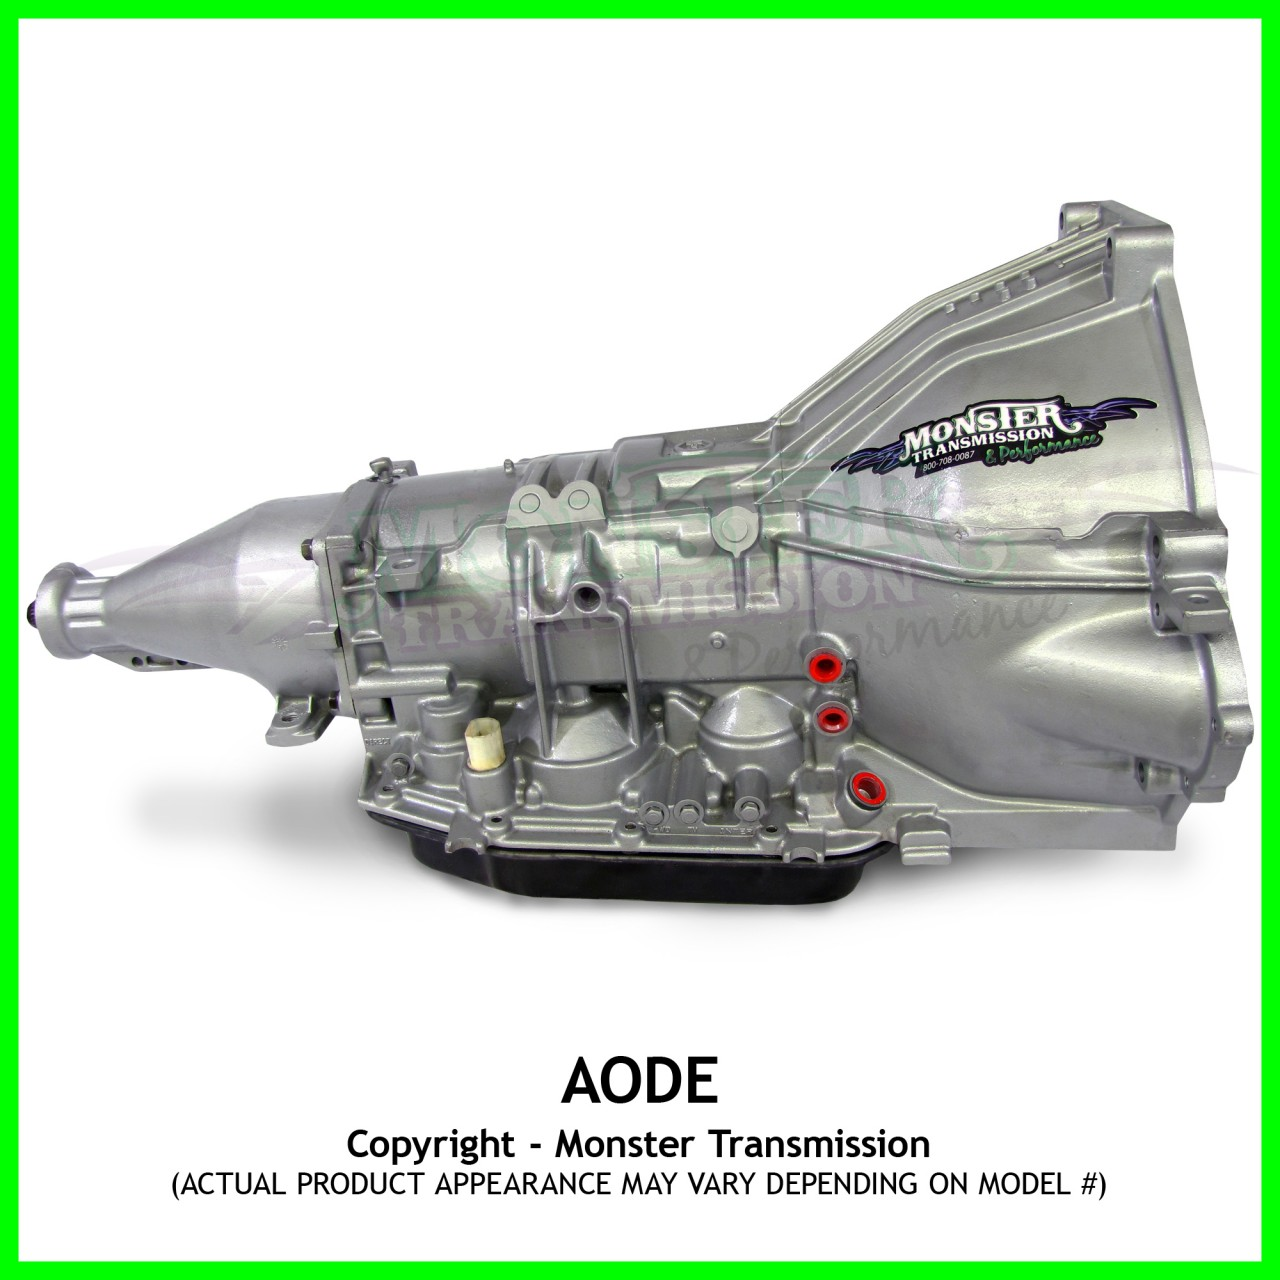 Aode Transmission Remanufactured Heavy Duty Performance 2wd Ford Aod Cooler Lines